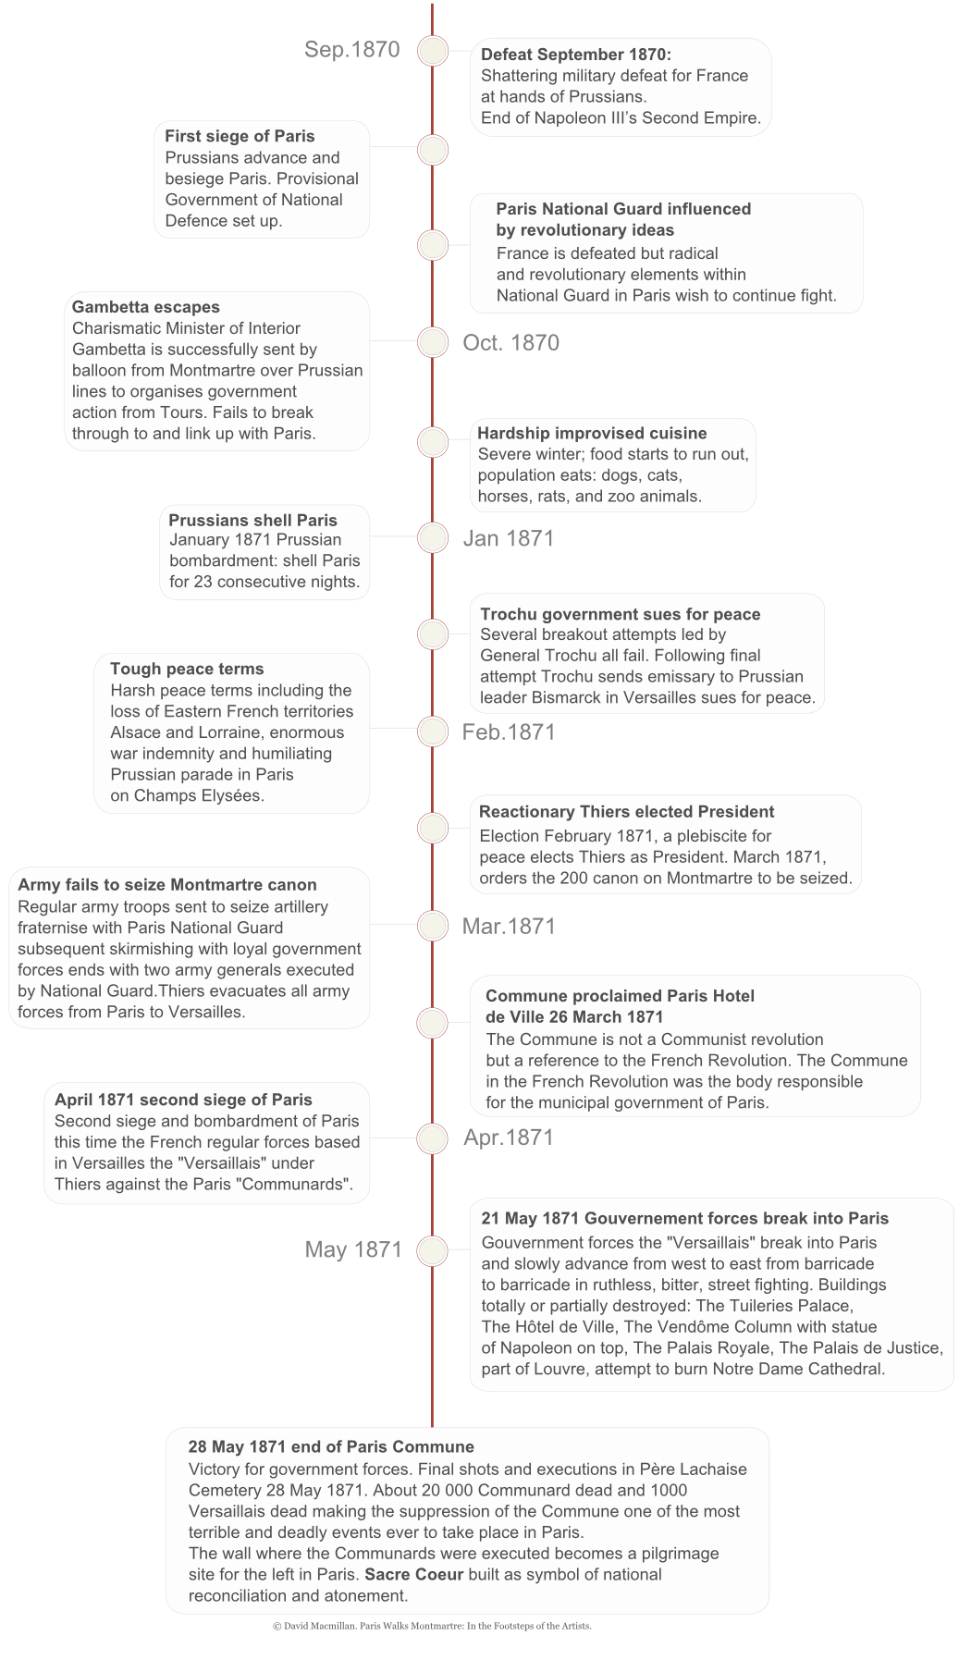 A vertical infographic timeline giving text details of the major events leading up to and including the Paris Commune of 1871.